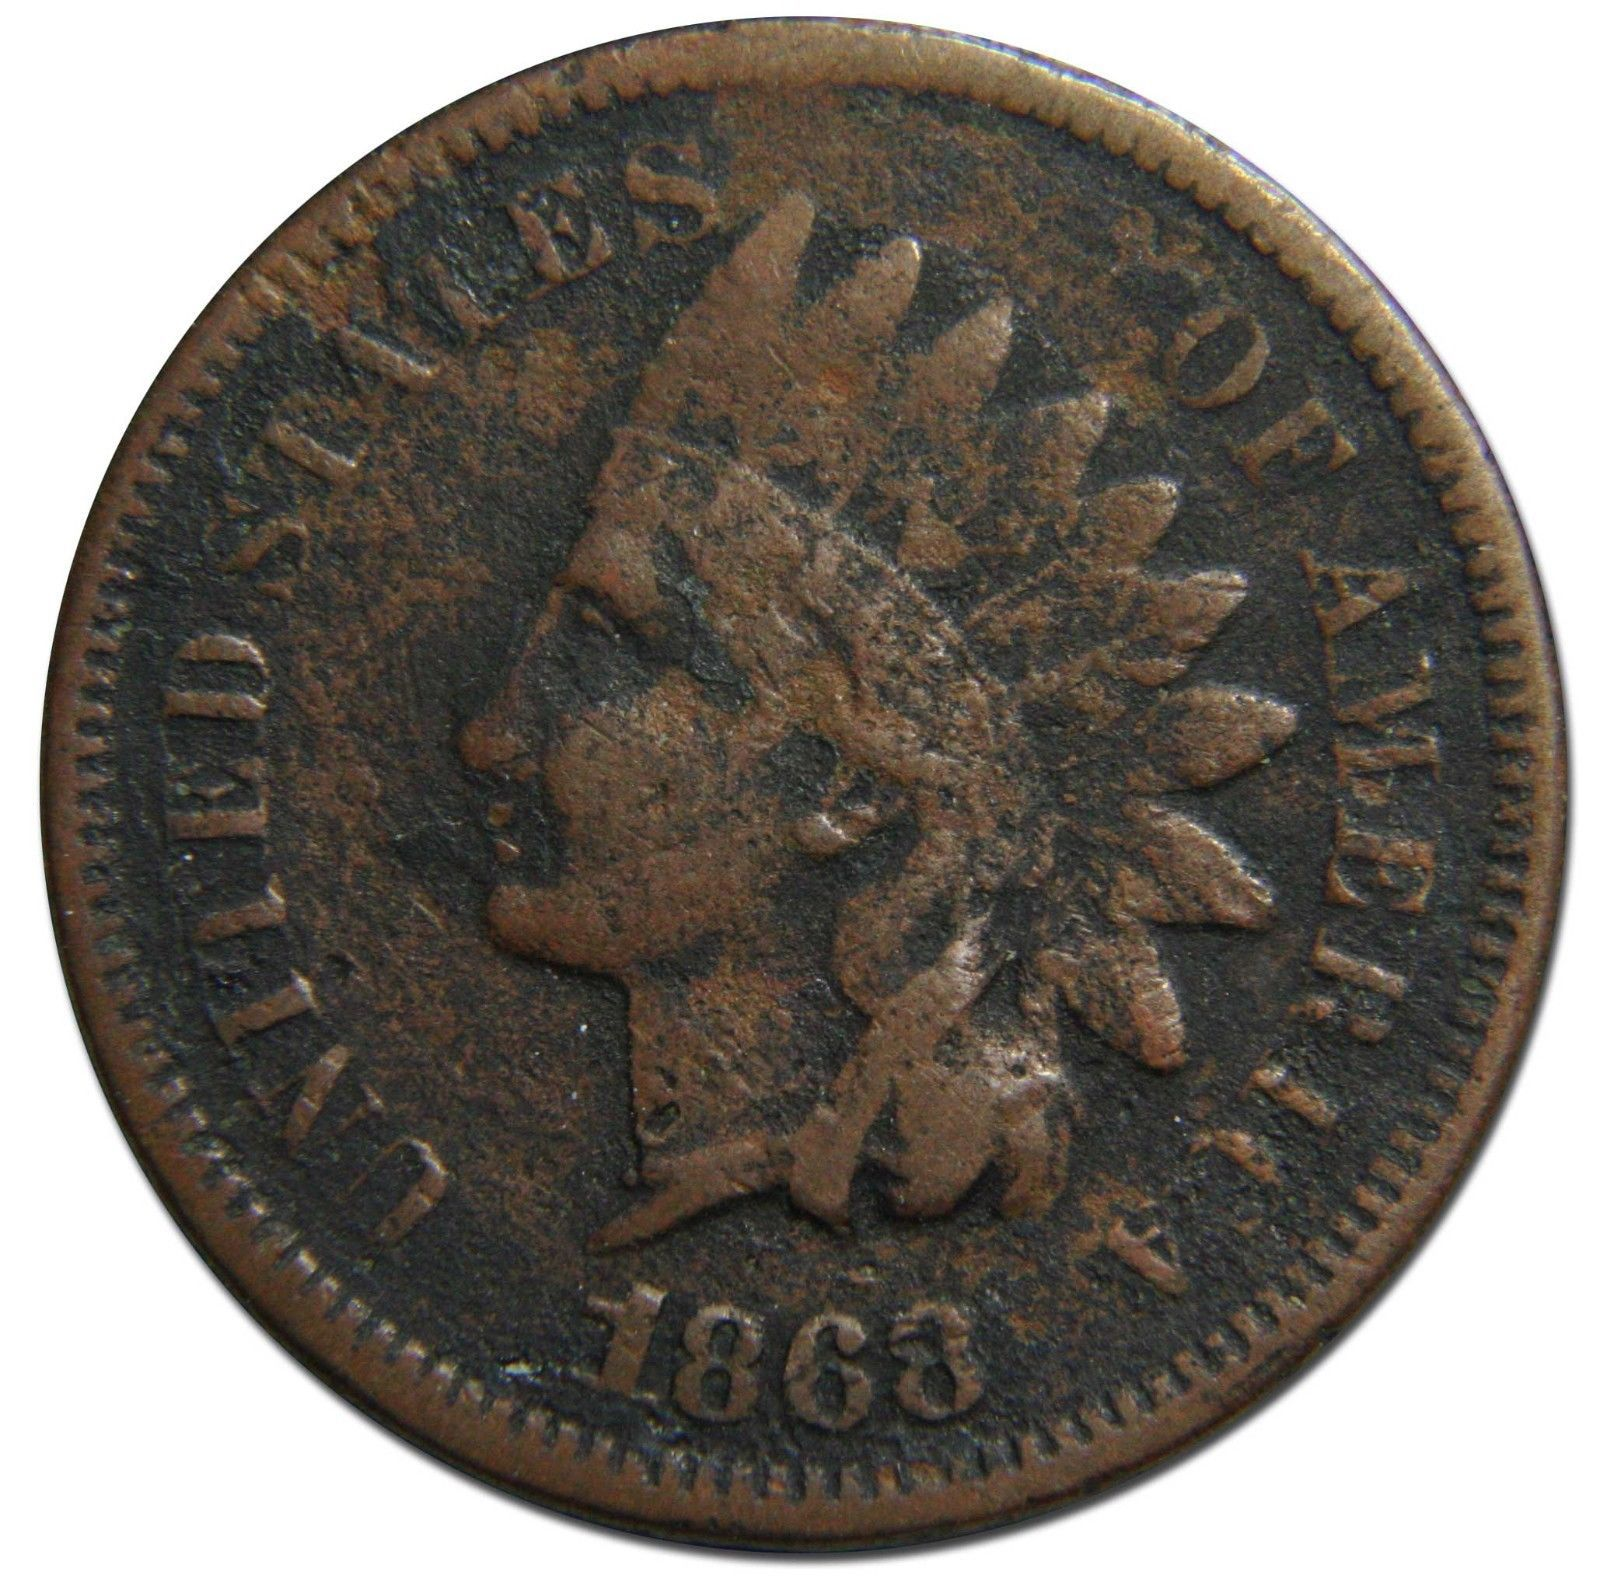 1868 One Cent Indian Head Penny Coin Lot# EA 335